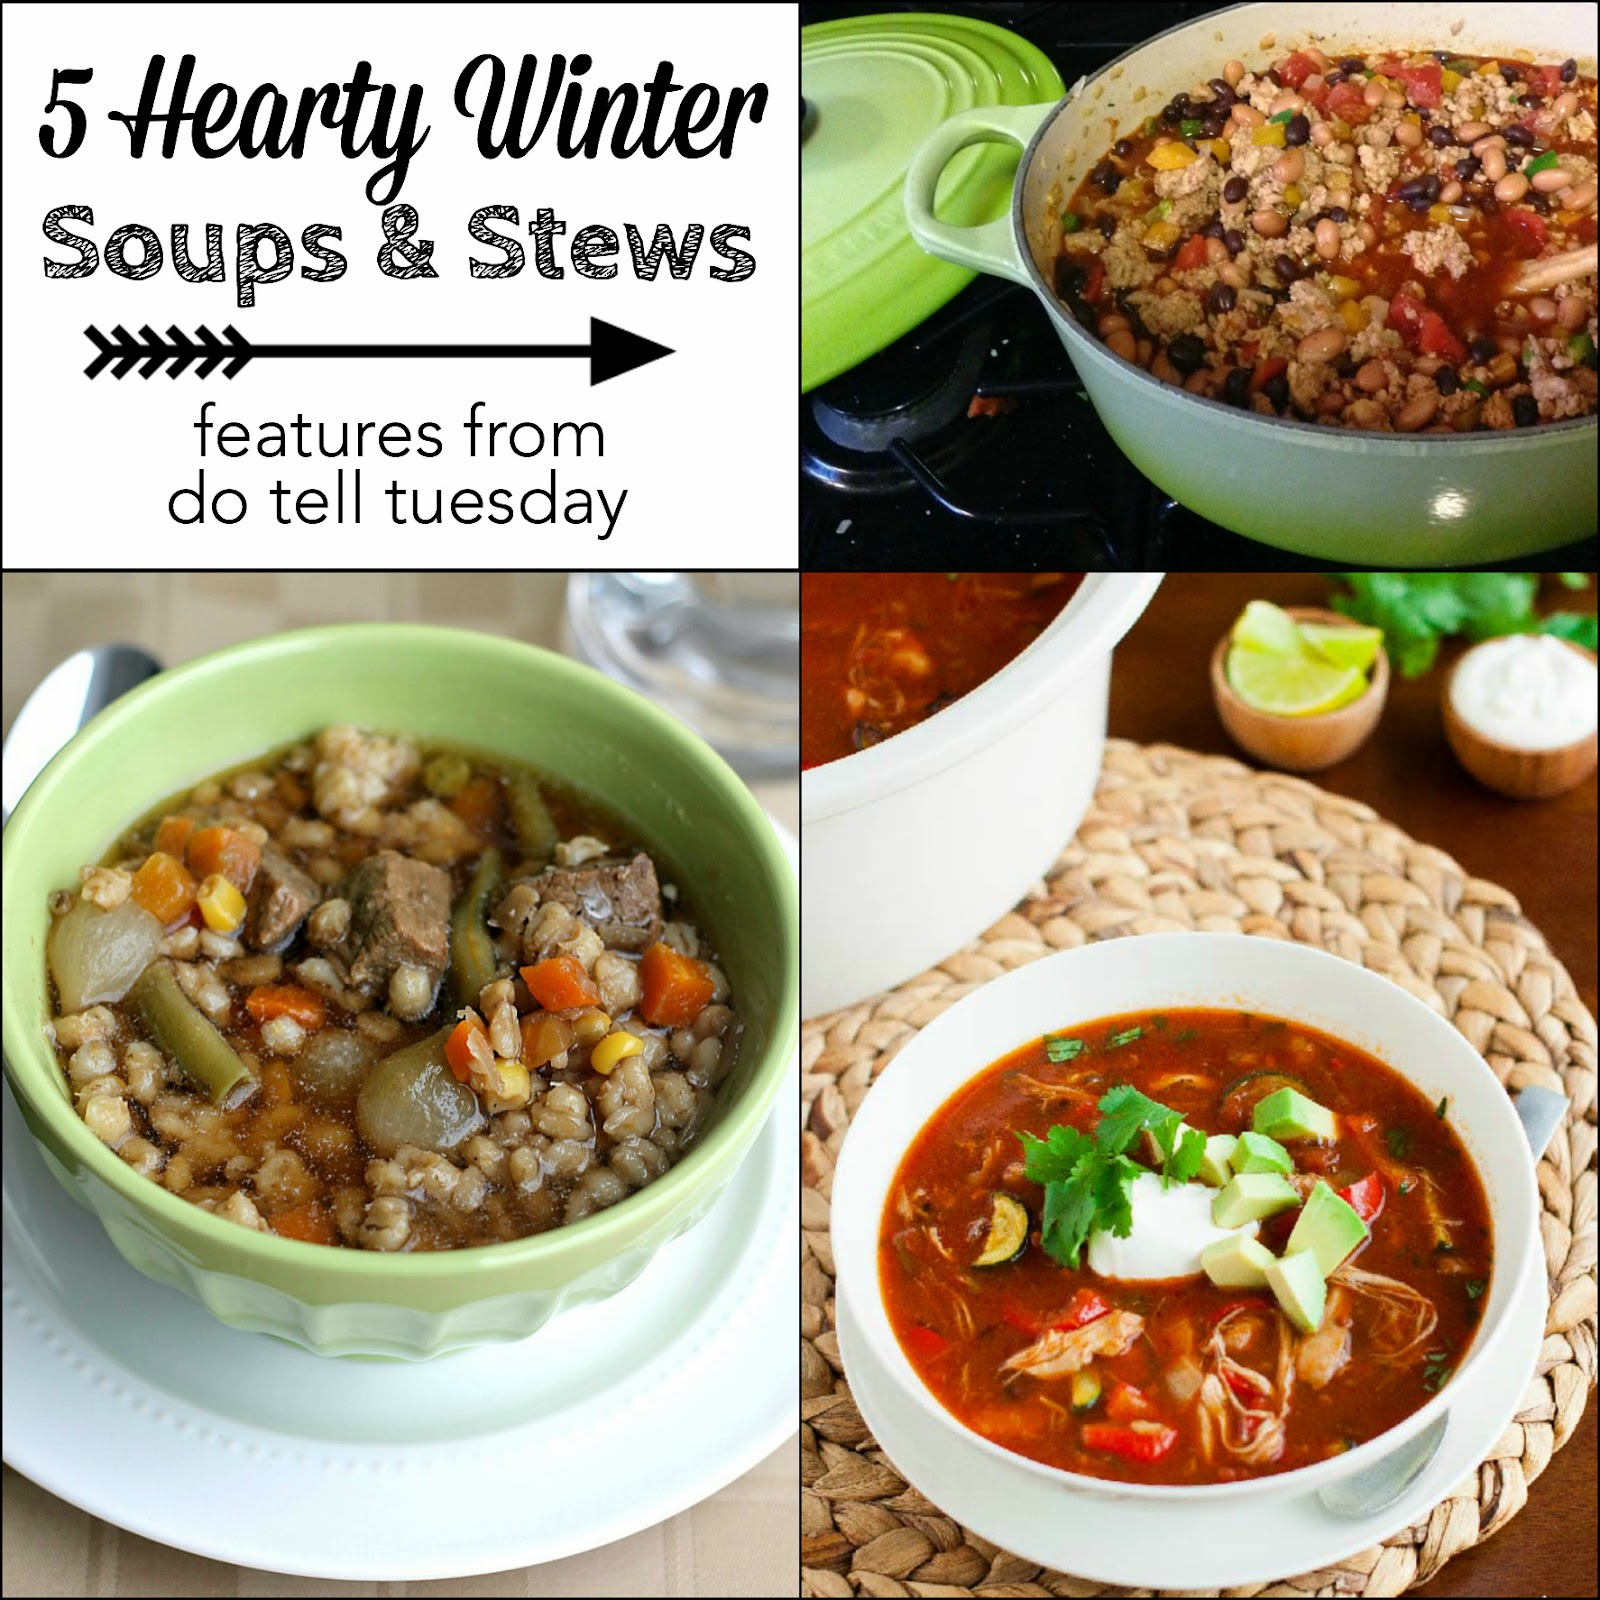 5 Hearty Winter Soups and Stews on Diane's Vintage Zest!